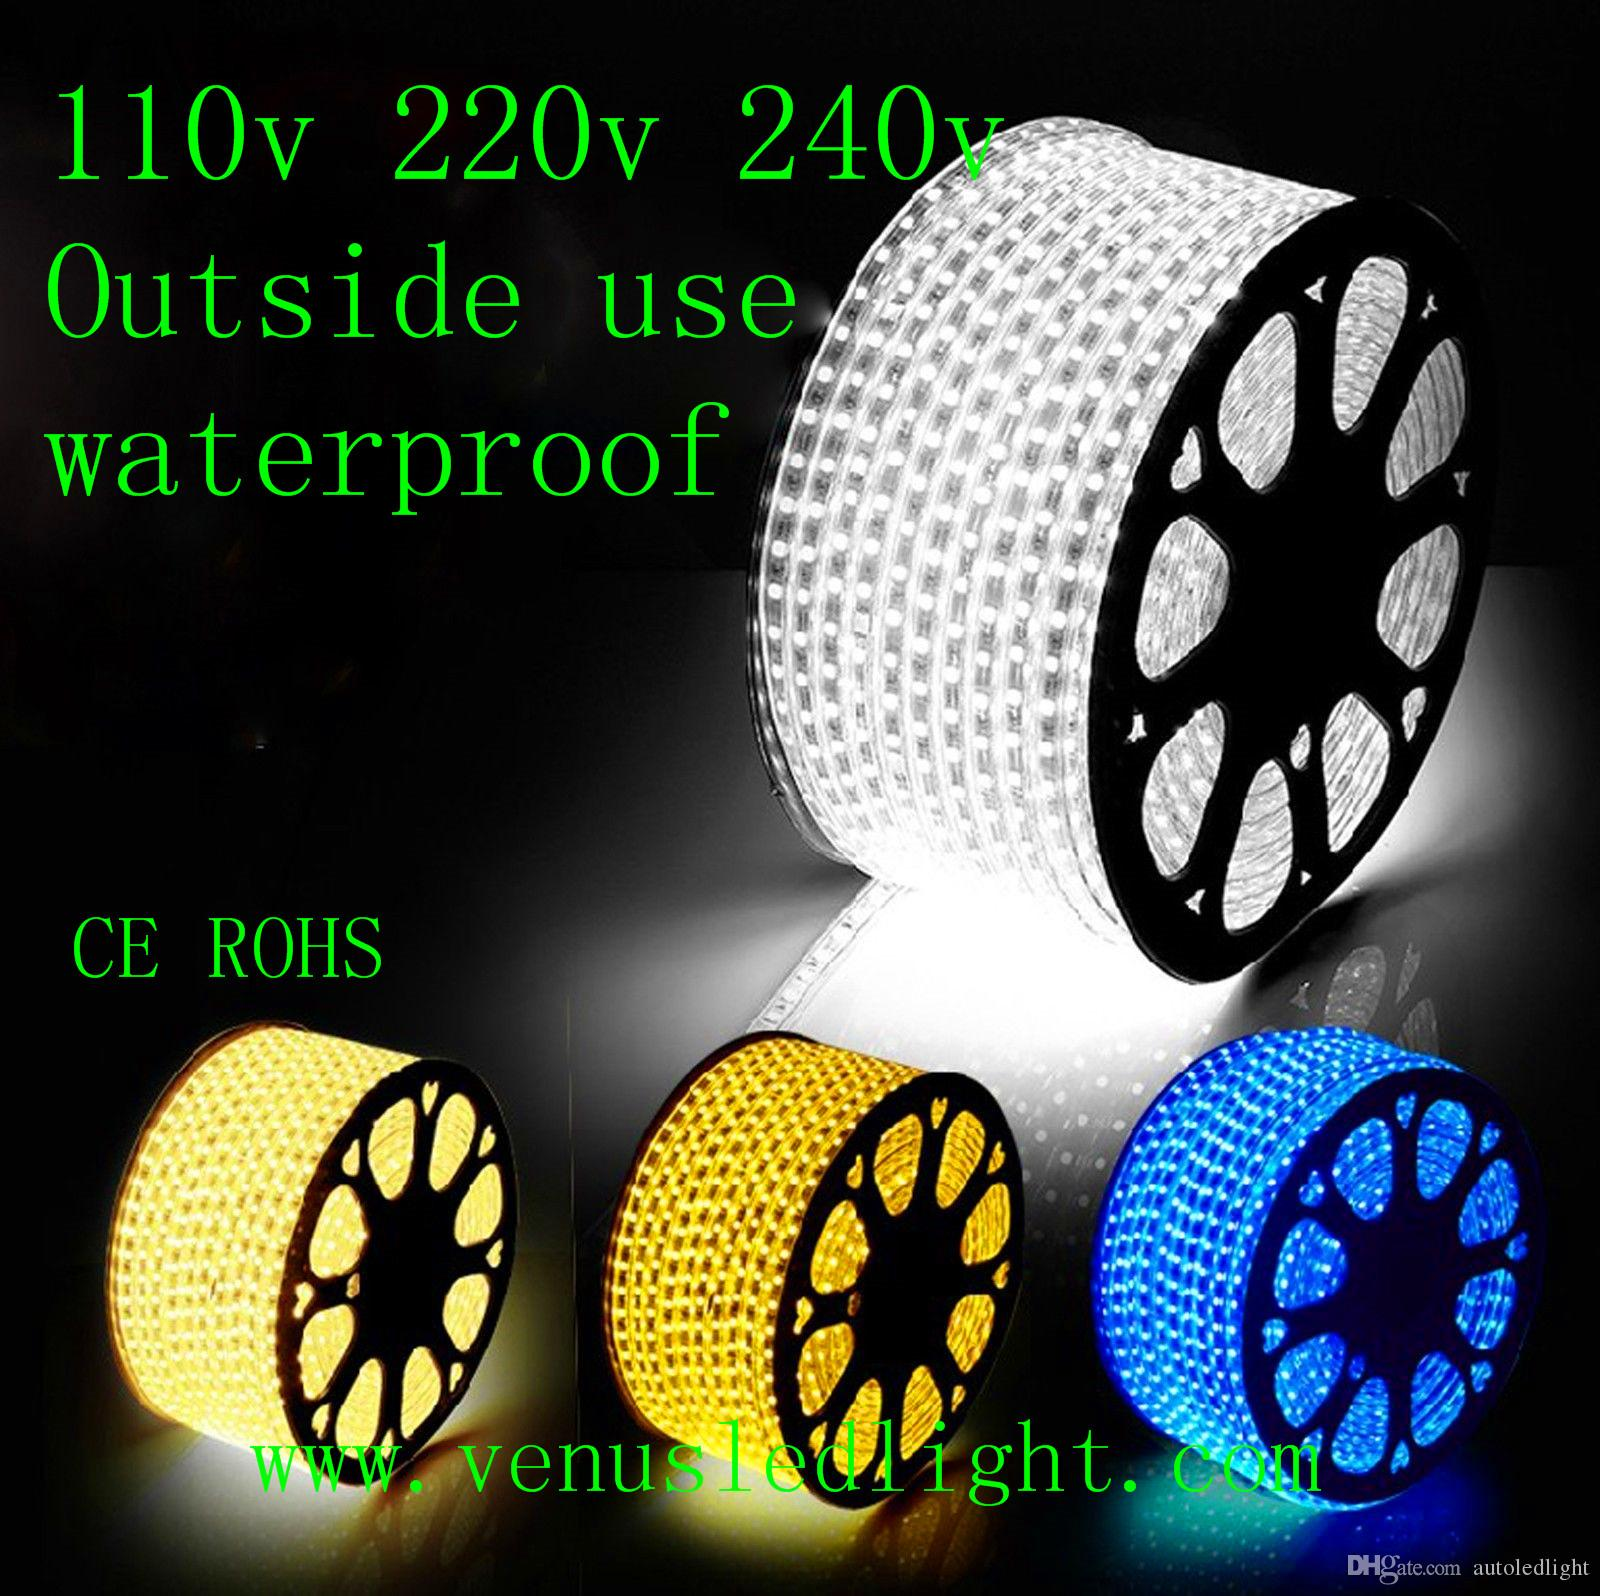 100m led strip light 60led flexible 110v220v waterproof smd 3528 100m led strip light 60led flexible 110v220v waterproof smd 3528 5050 chiristmas led rope light outdoor led light xmas decorating car led light strips dmx mozeypictures